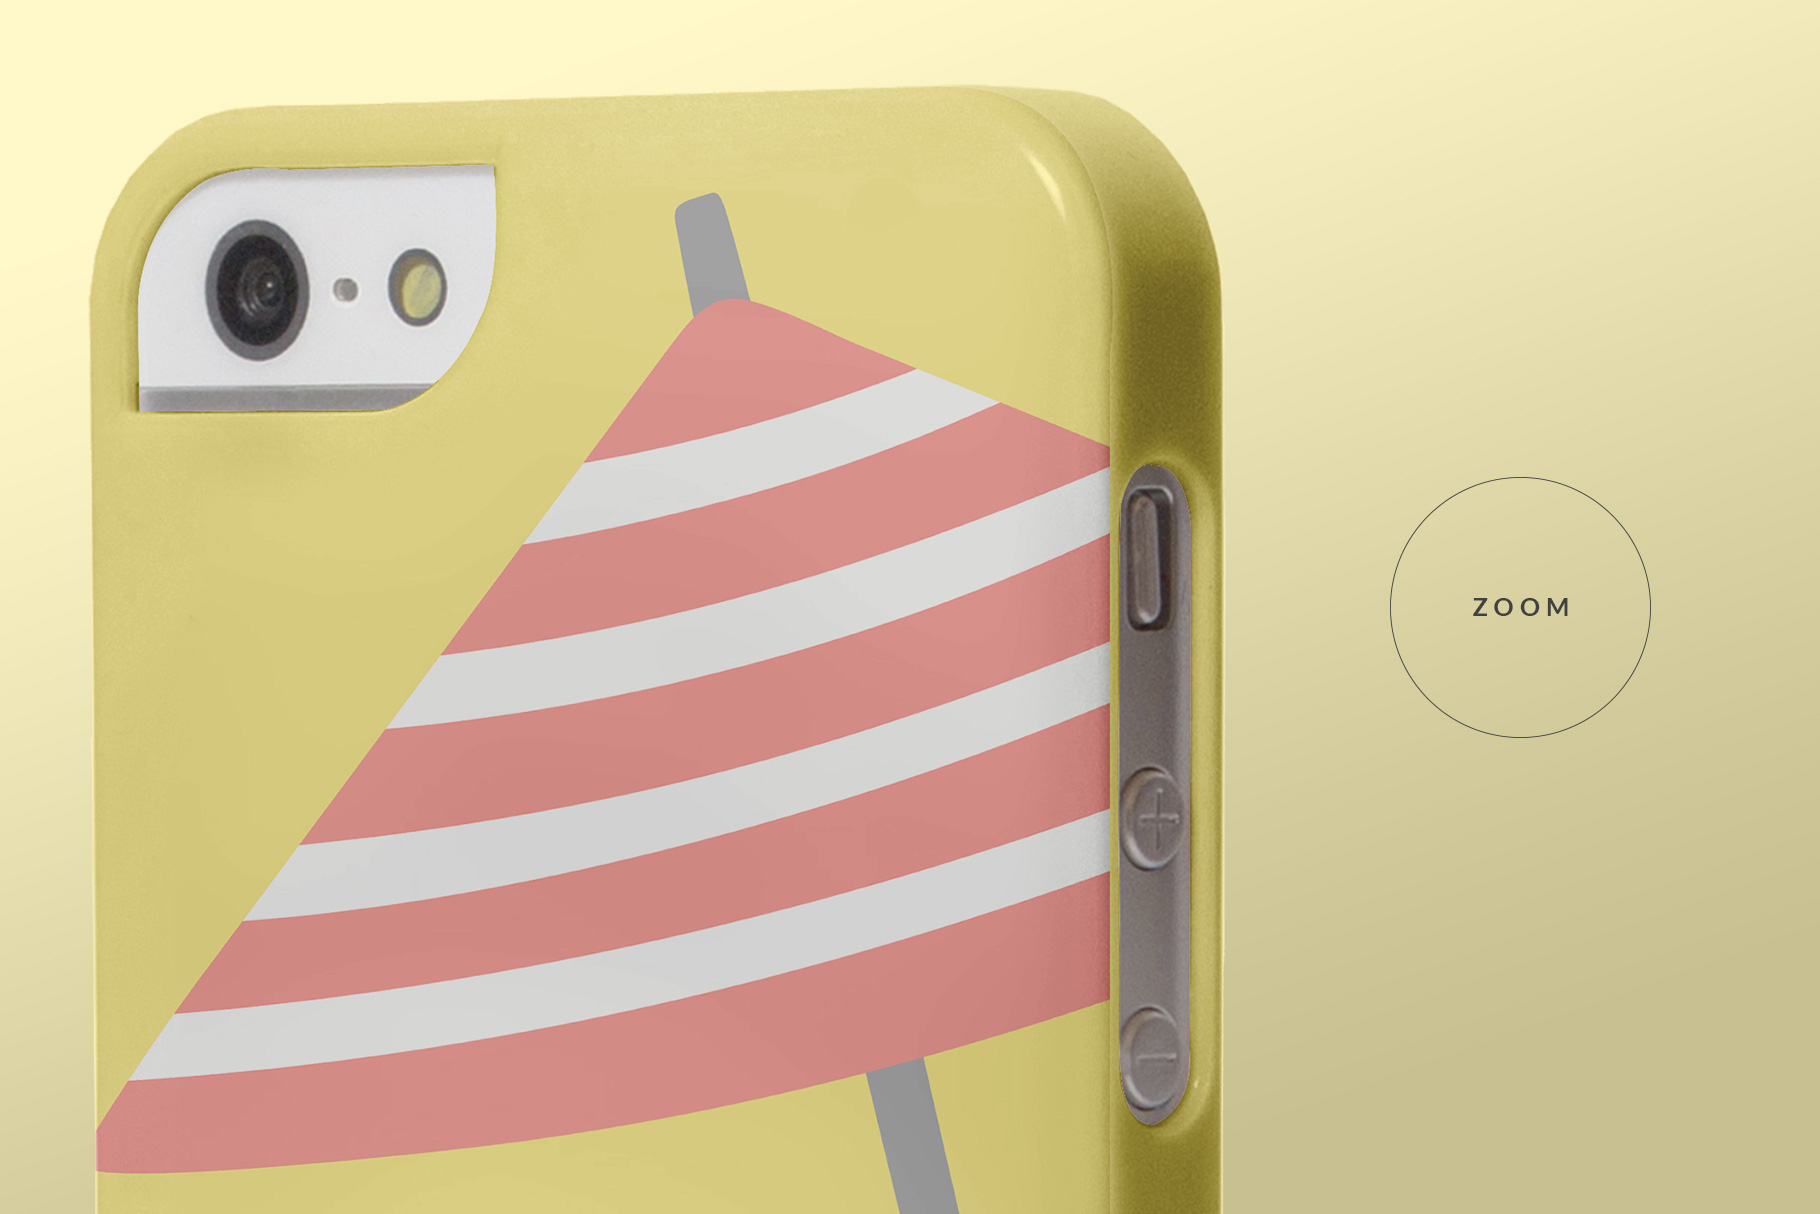 zoomed in image of the iphone snap backcase mockup